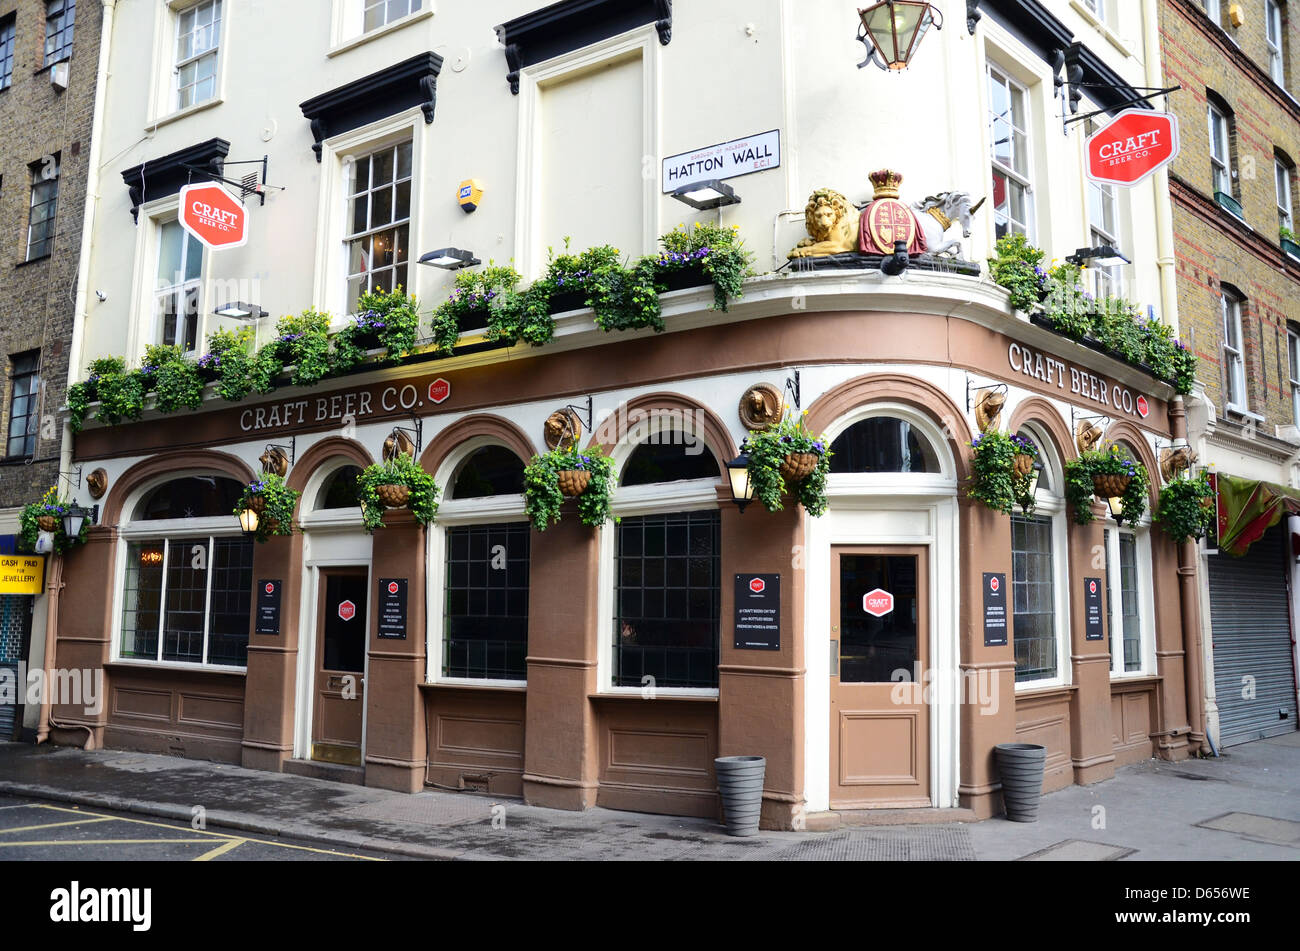 Craft beer co pub hatton wall near chancery lane london for Craft beer pubs near me